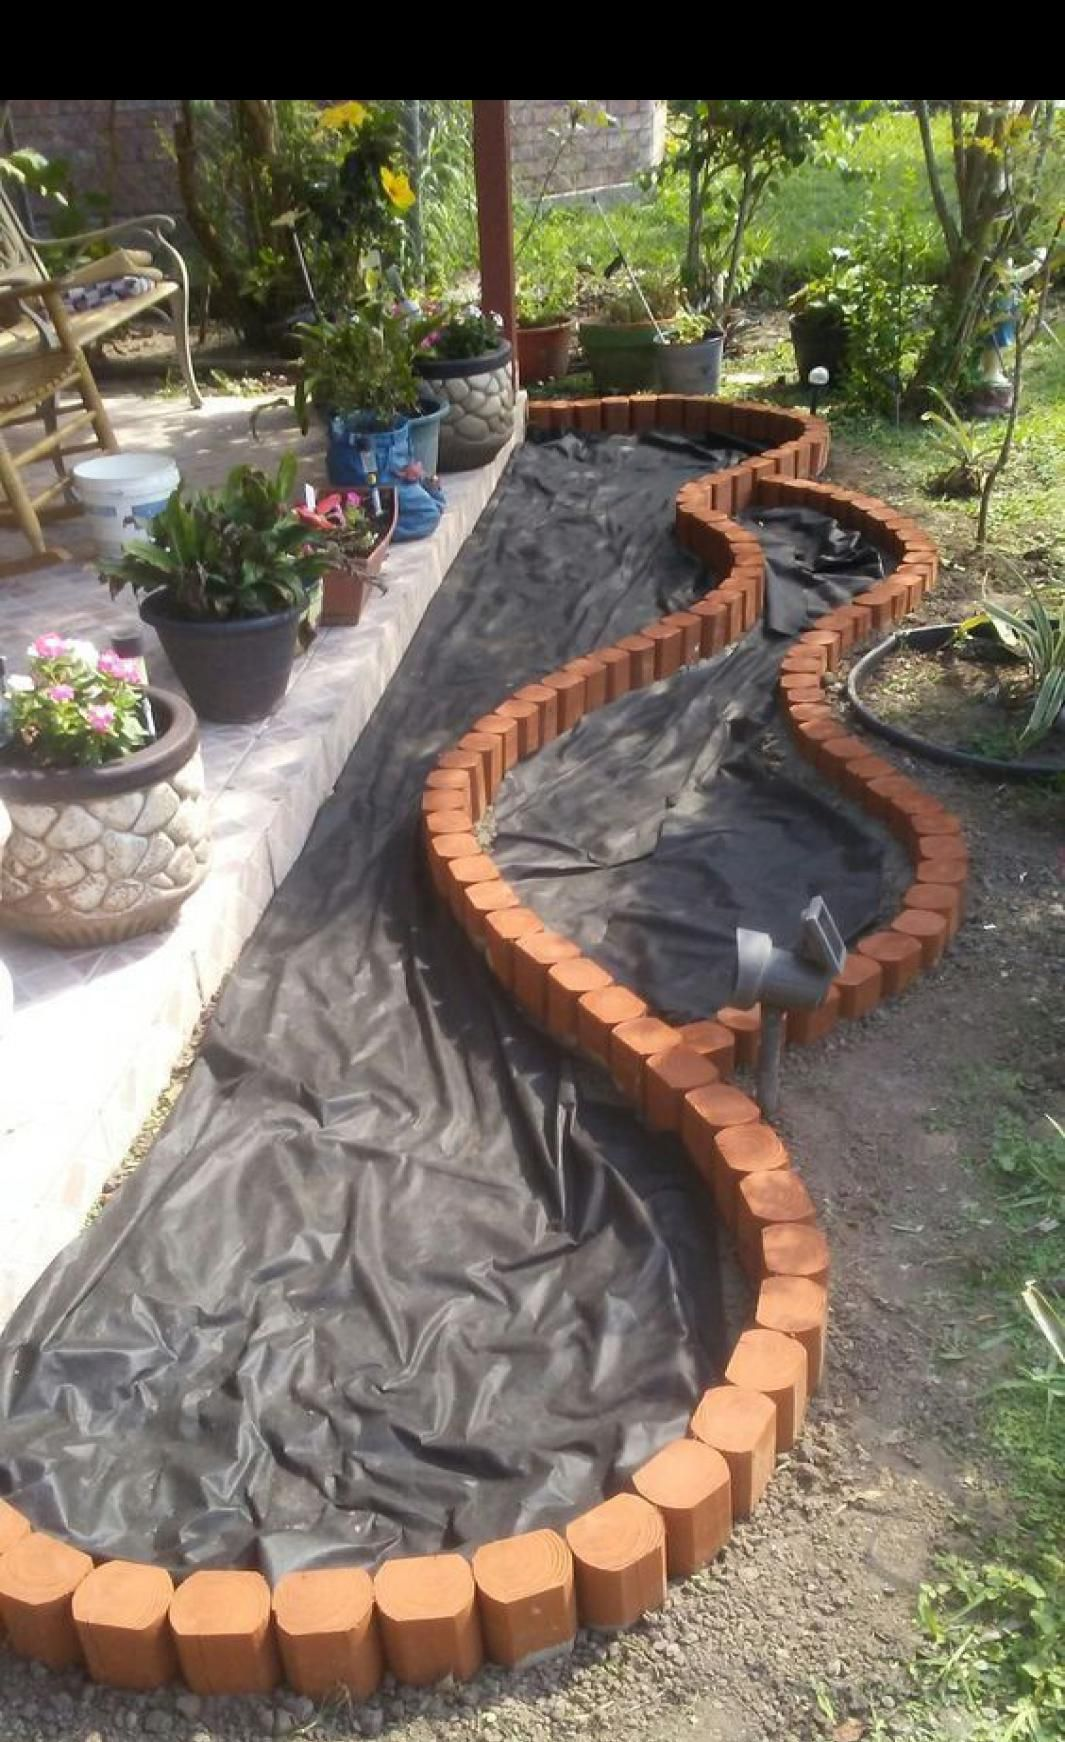 46 Simply Pool Deck Designs For Your Backyard Small Front Yard Landscaping Garden Ideas To Make Backyard Landscaping Designs